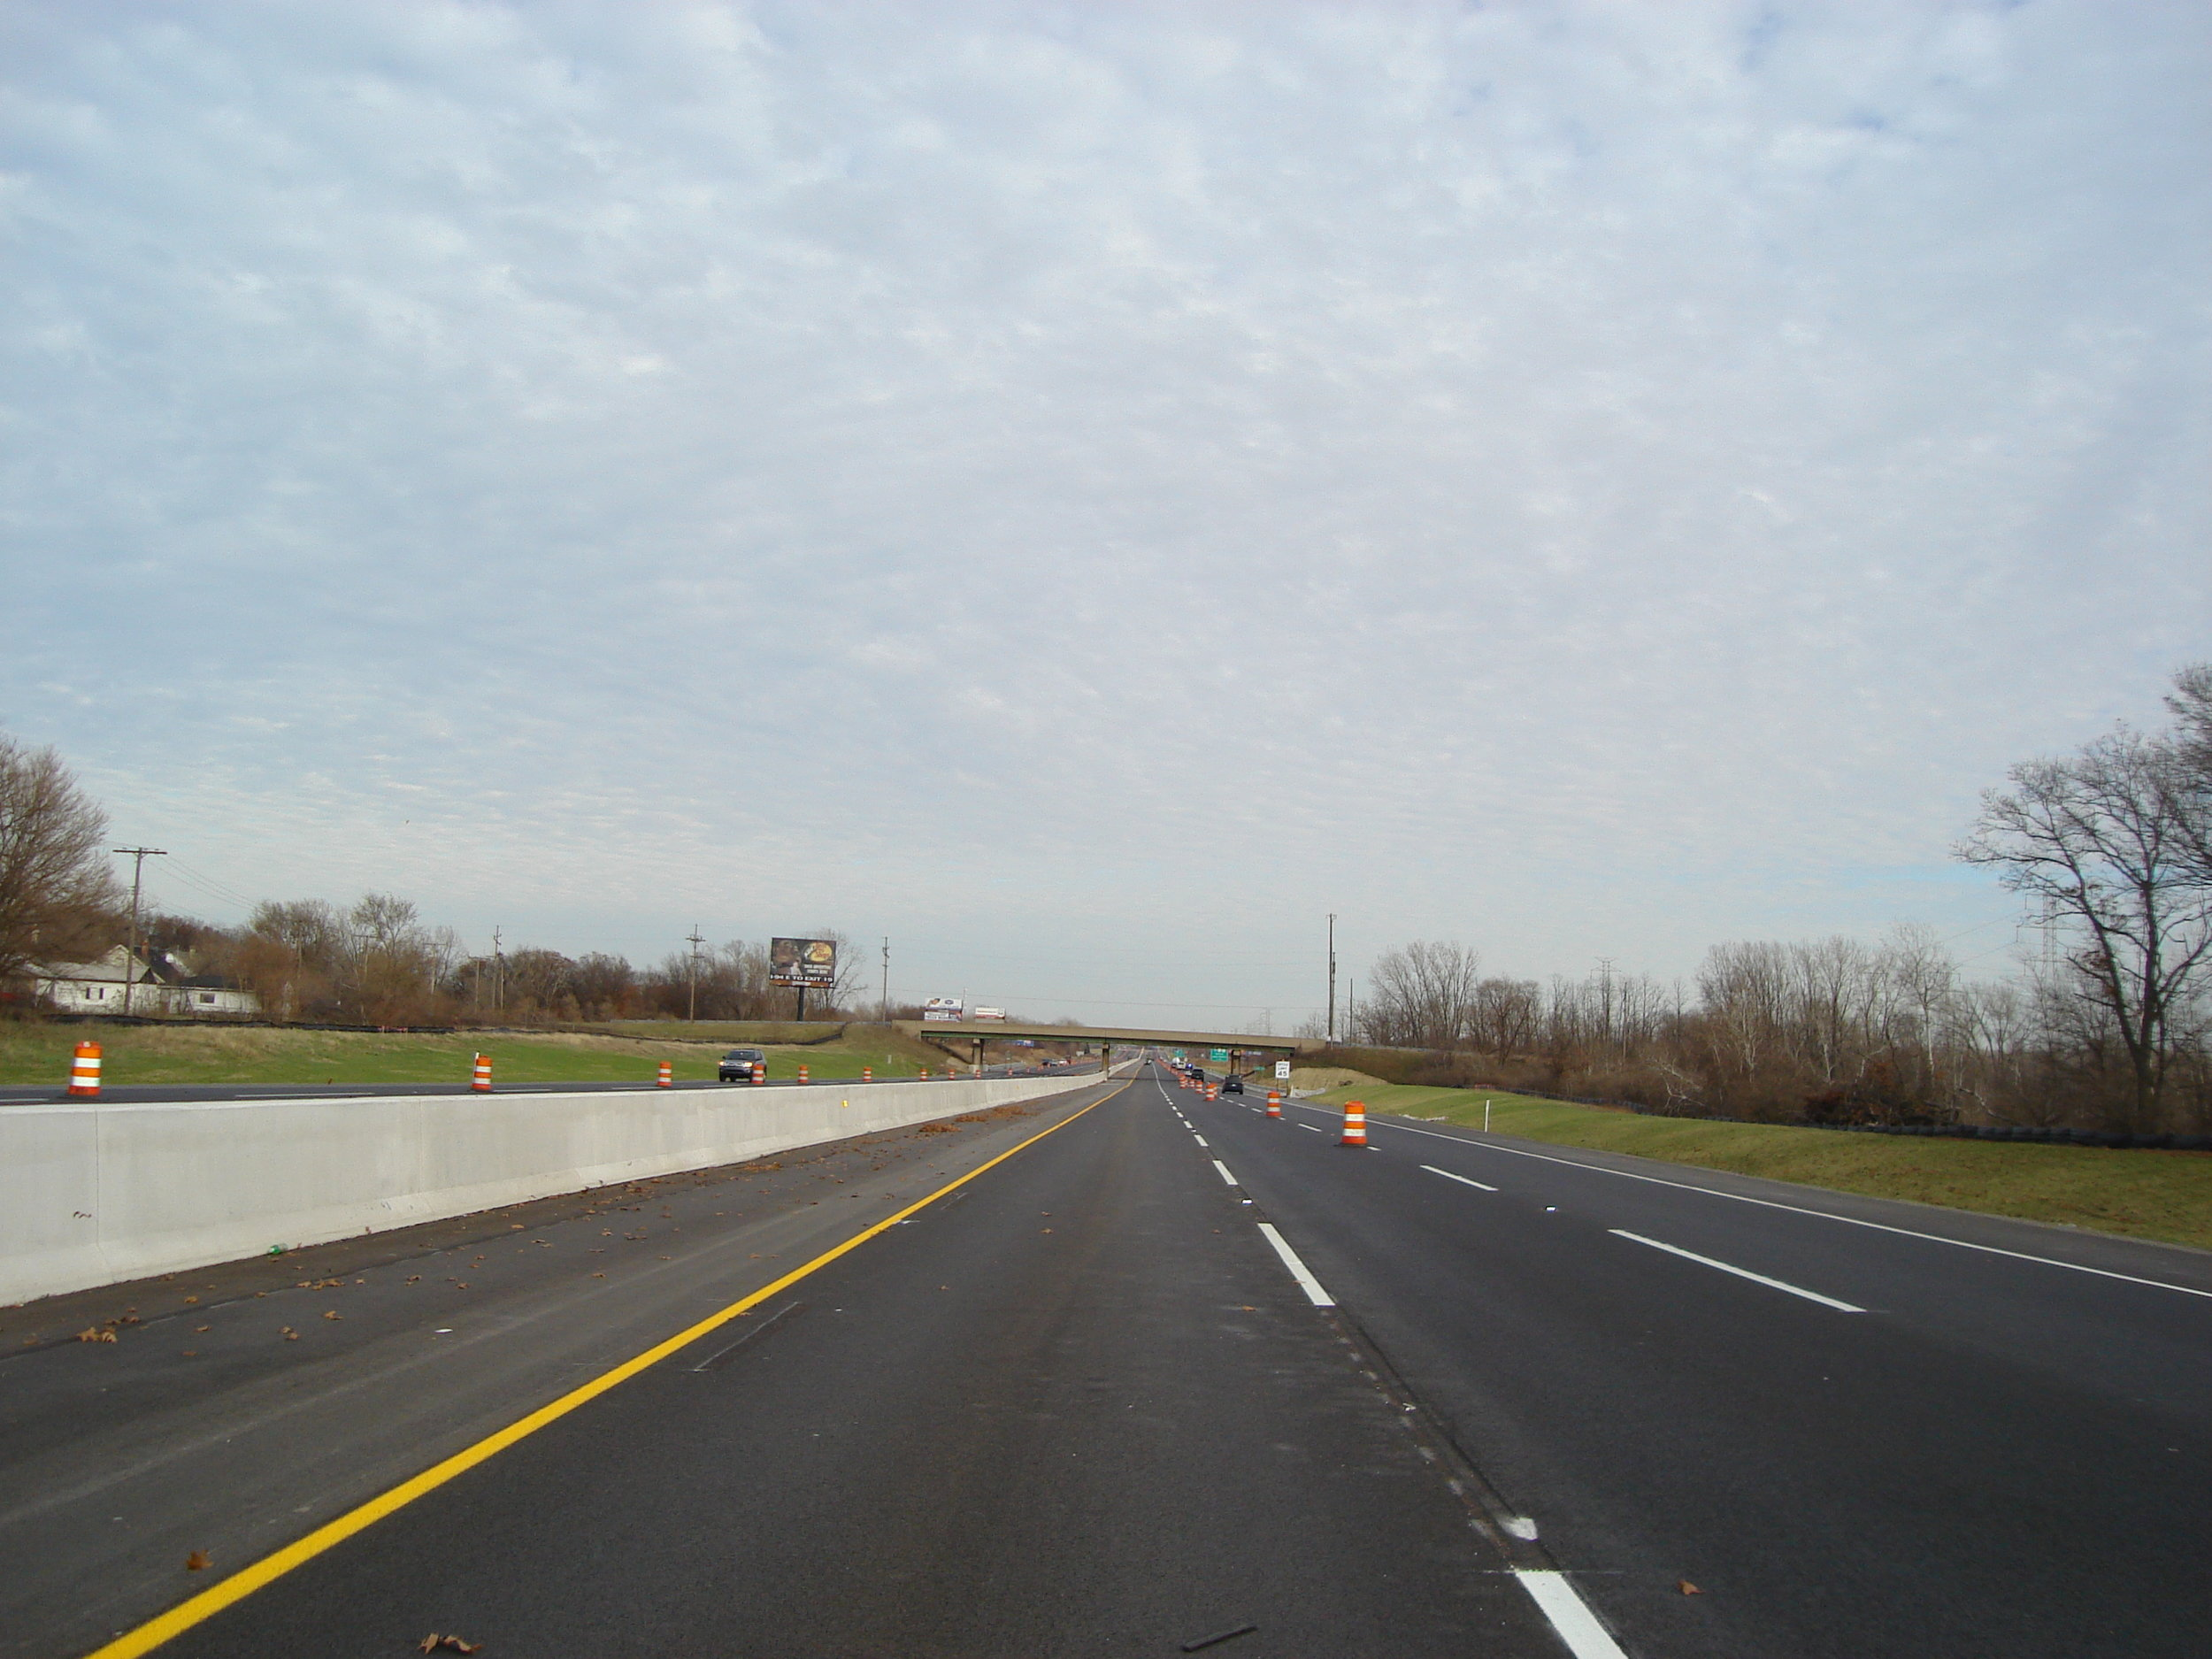 Indiana Toll Road Striping and MOT